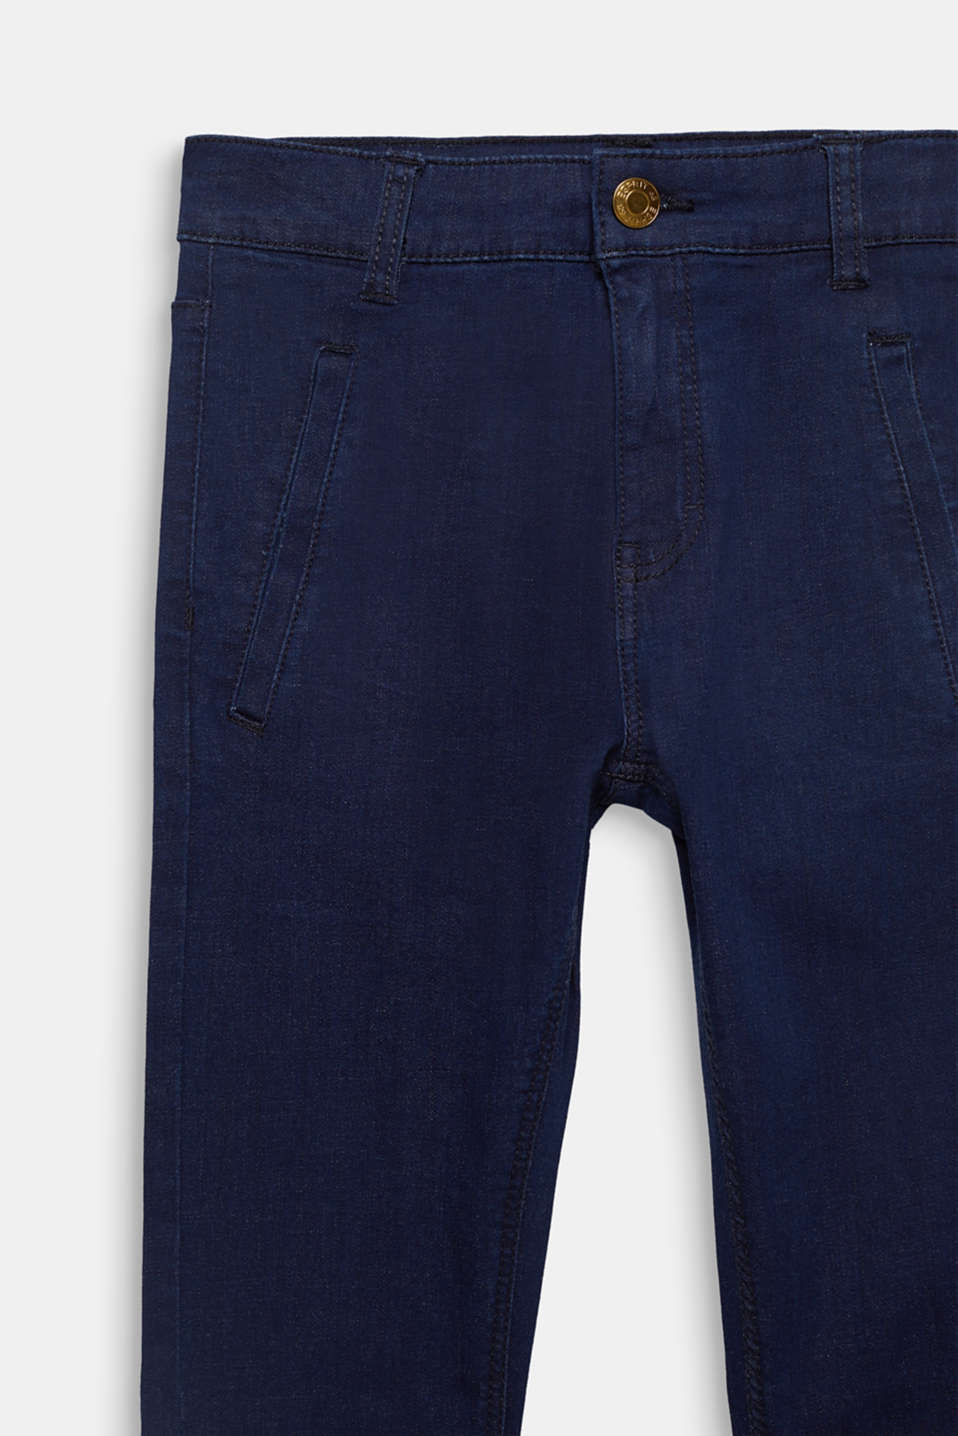 Dark denim stretch jeans with an adjustable waistband, LCRINSE WASH DEN, detail image number 2